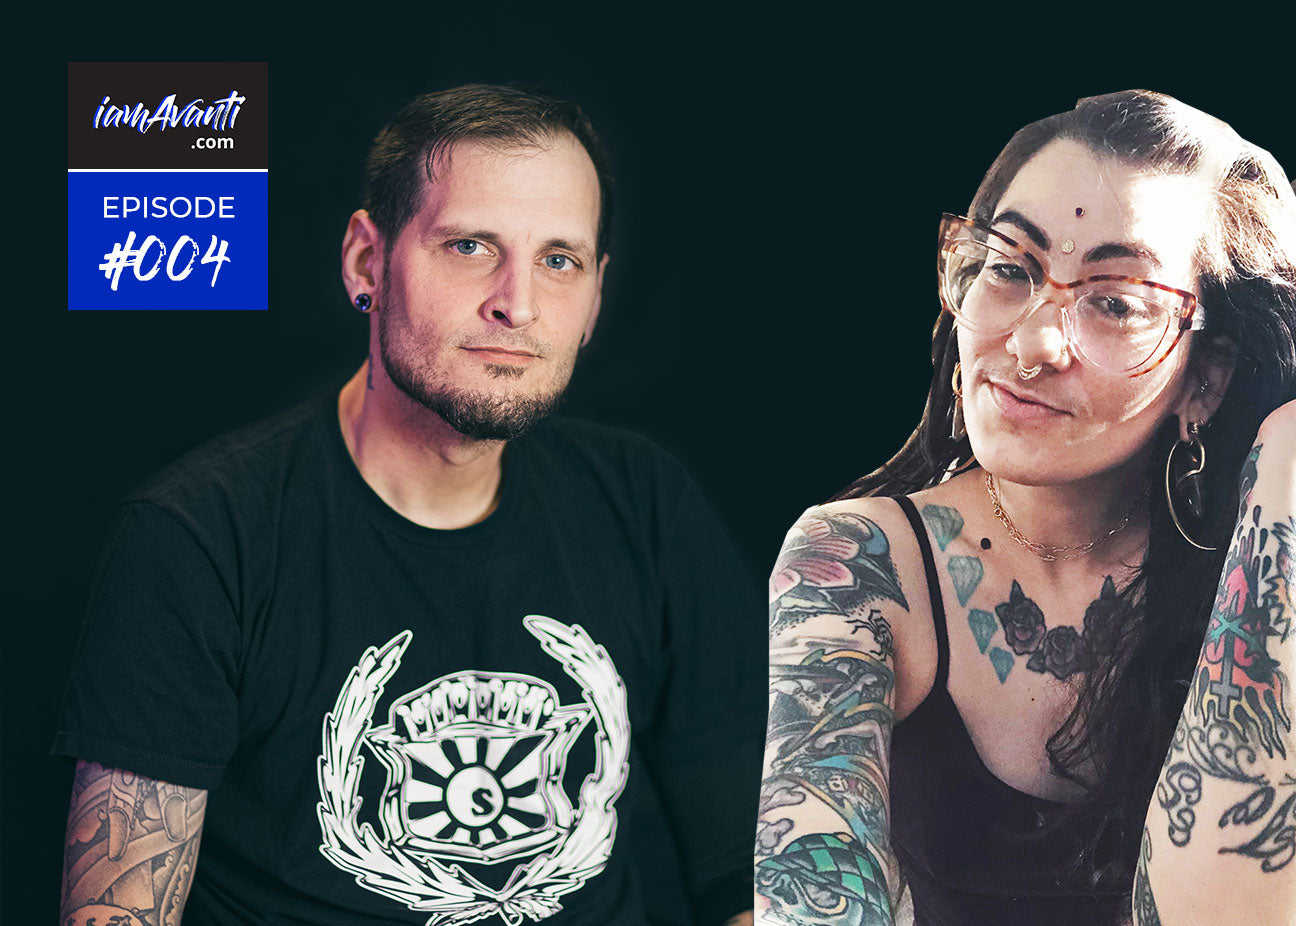 EP004: Ursula & Jasper Interviews! 20+ Yrs Piercing Experience With Two of Avanti's Awesome Piercers!